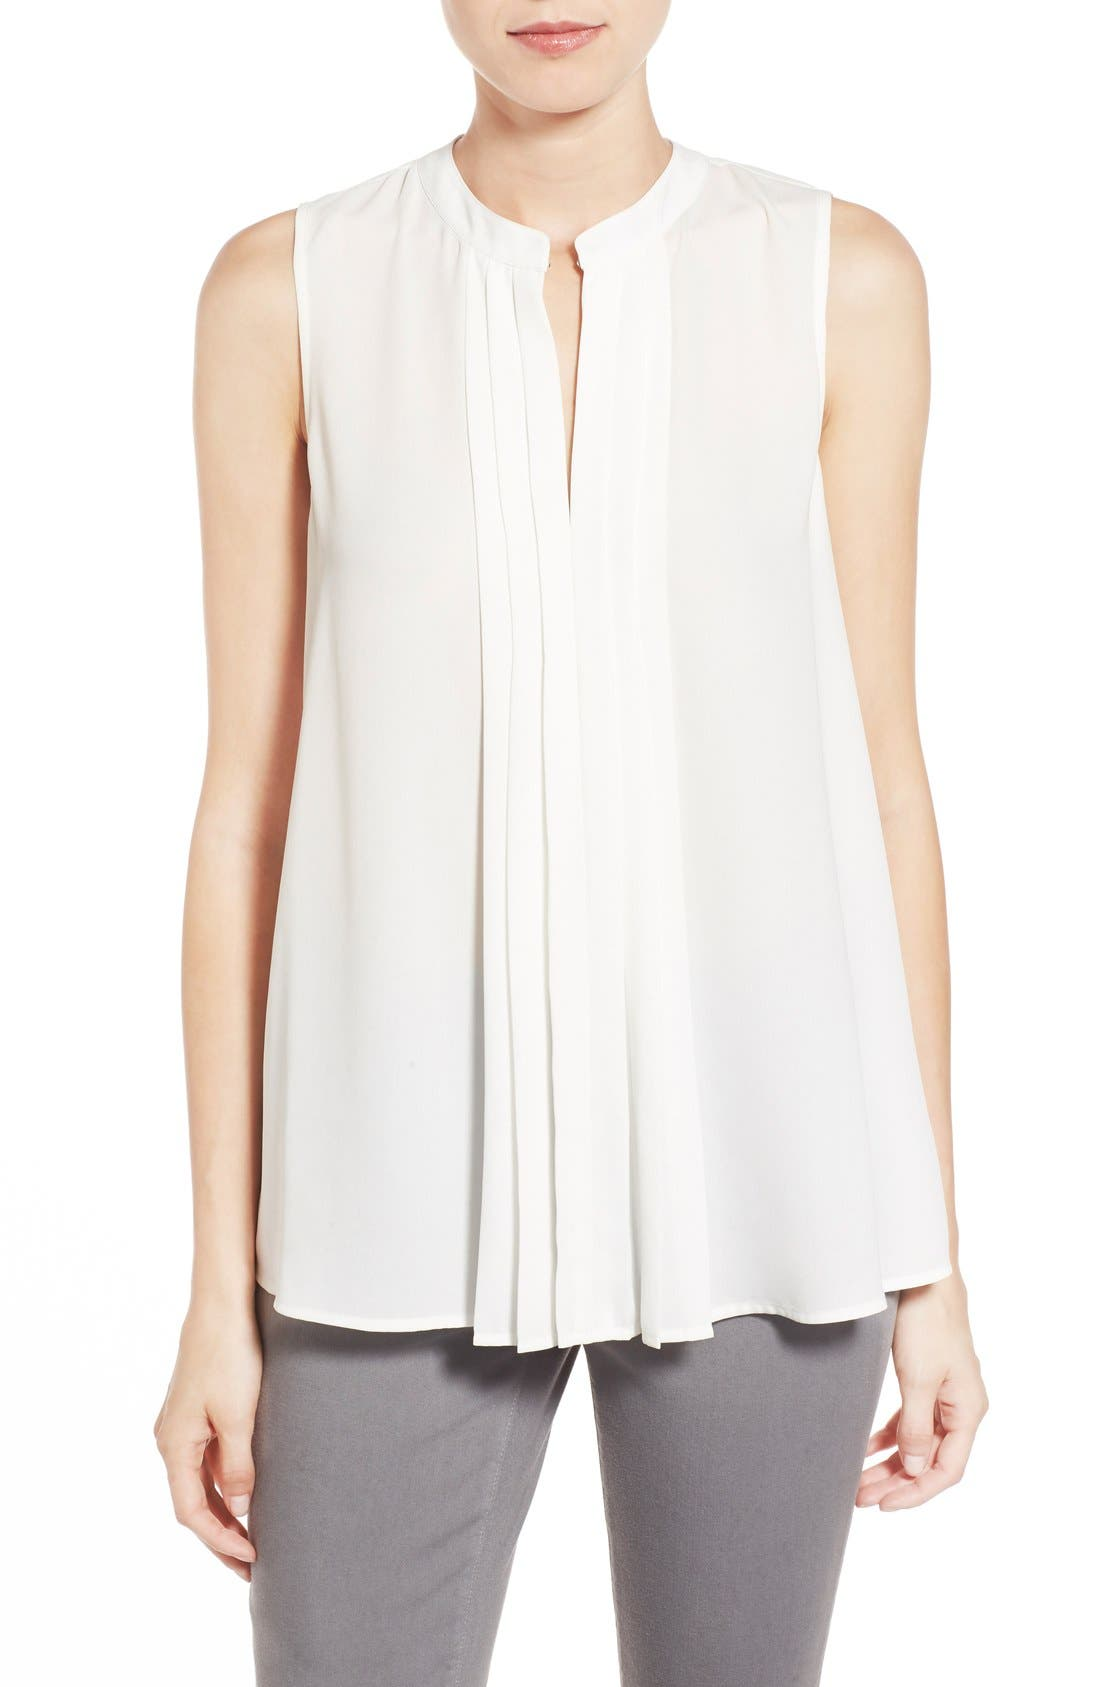 Vince Camuto Pleat Front Sleeveless Blouse | Nordstrom